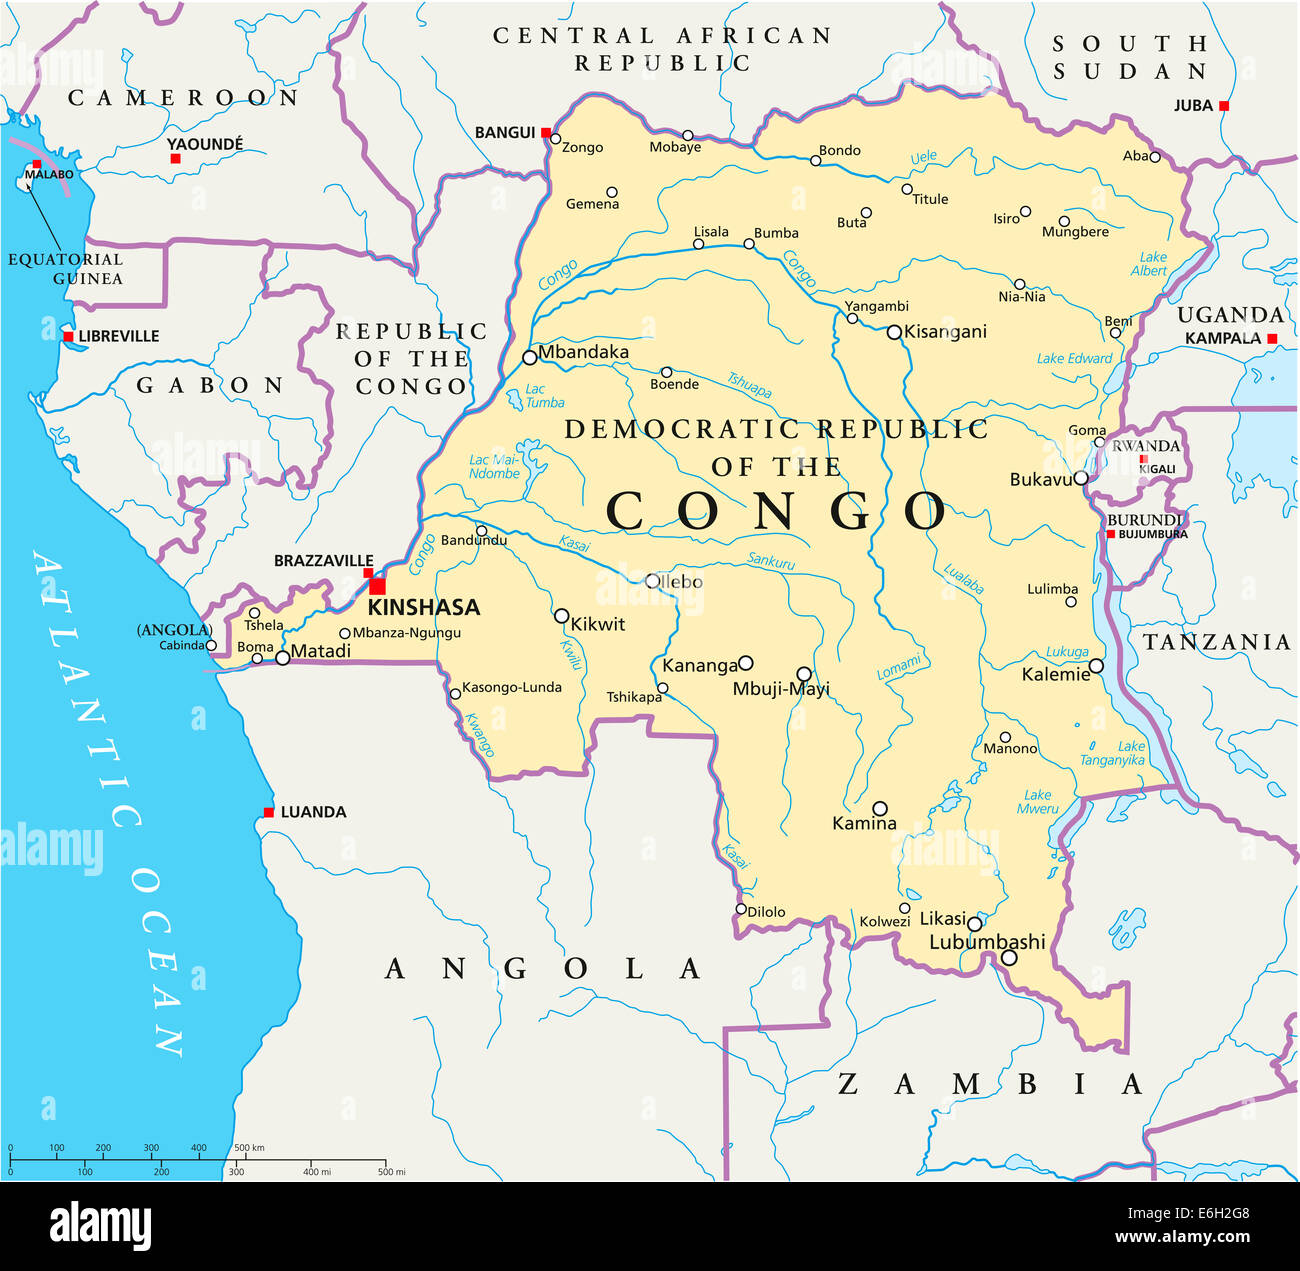 Congo Democratic Republic Political Map with capital Kinshasa, national borders, most important cities, rivers and - Stock Image